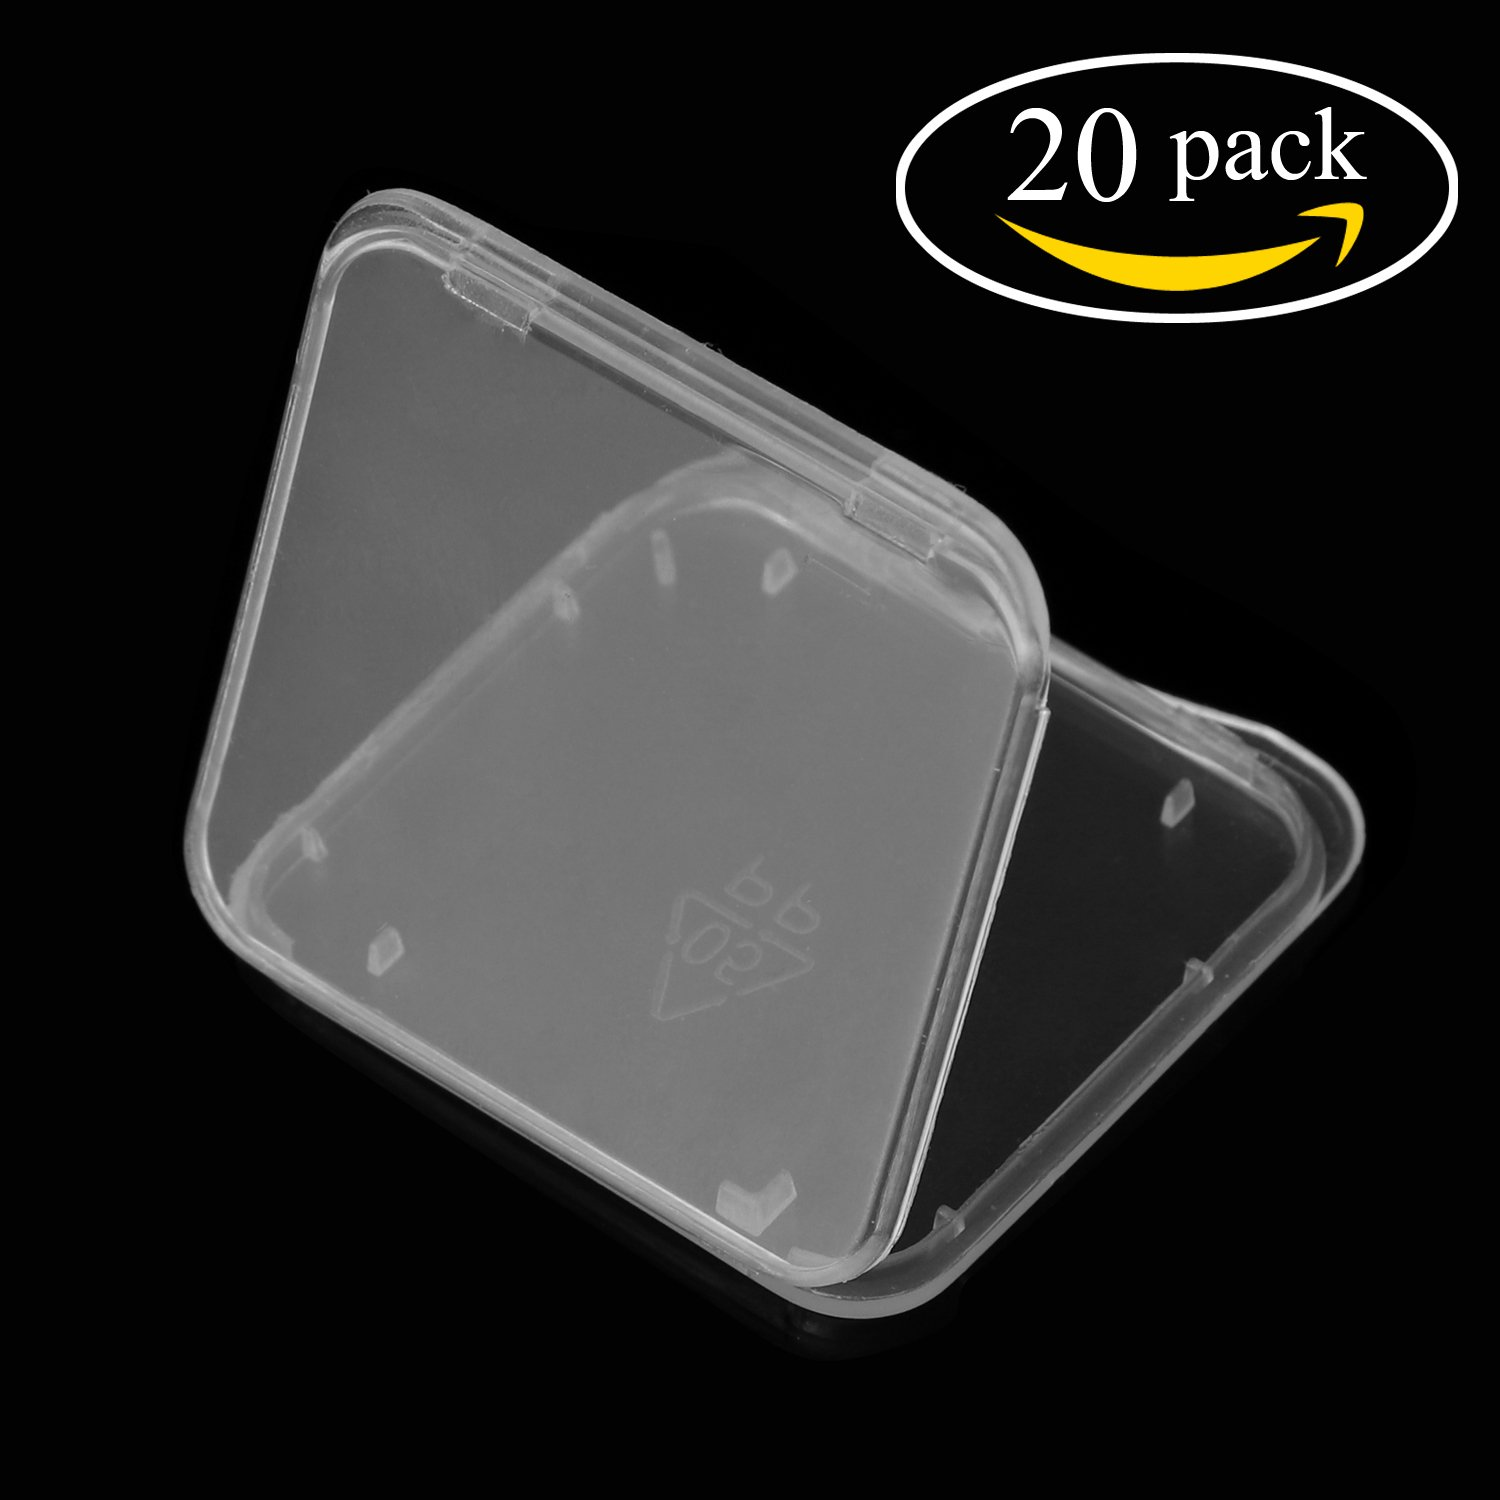 WOVTE Plastic Secure Digital SD MMC SDHC PRO DUO Memory Card Storage Jewelery Case No Memory Card Included 1.375 x 1.375 x 0.25 Inch Transparent White Pack of 20